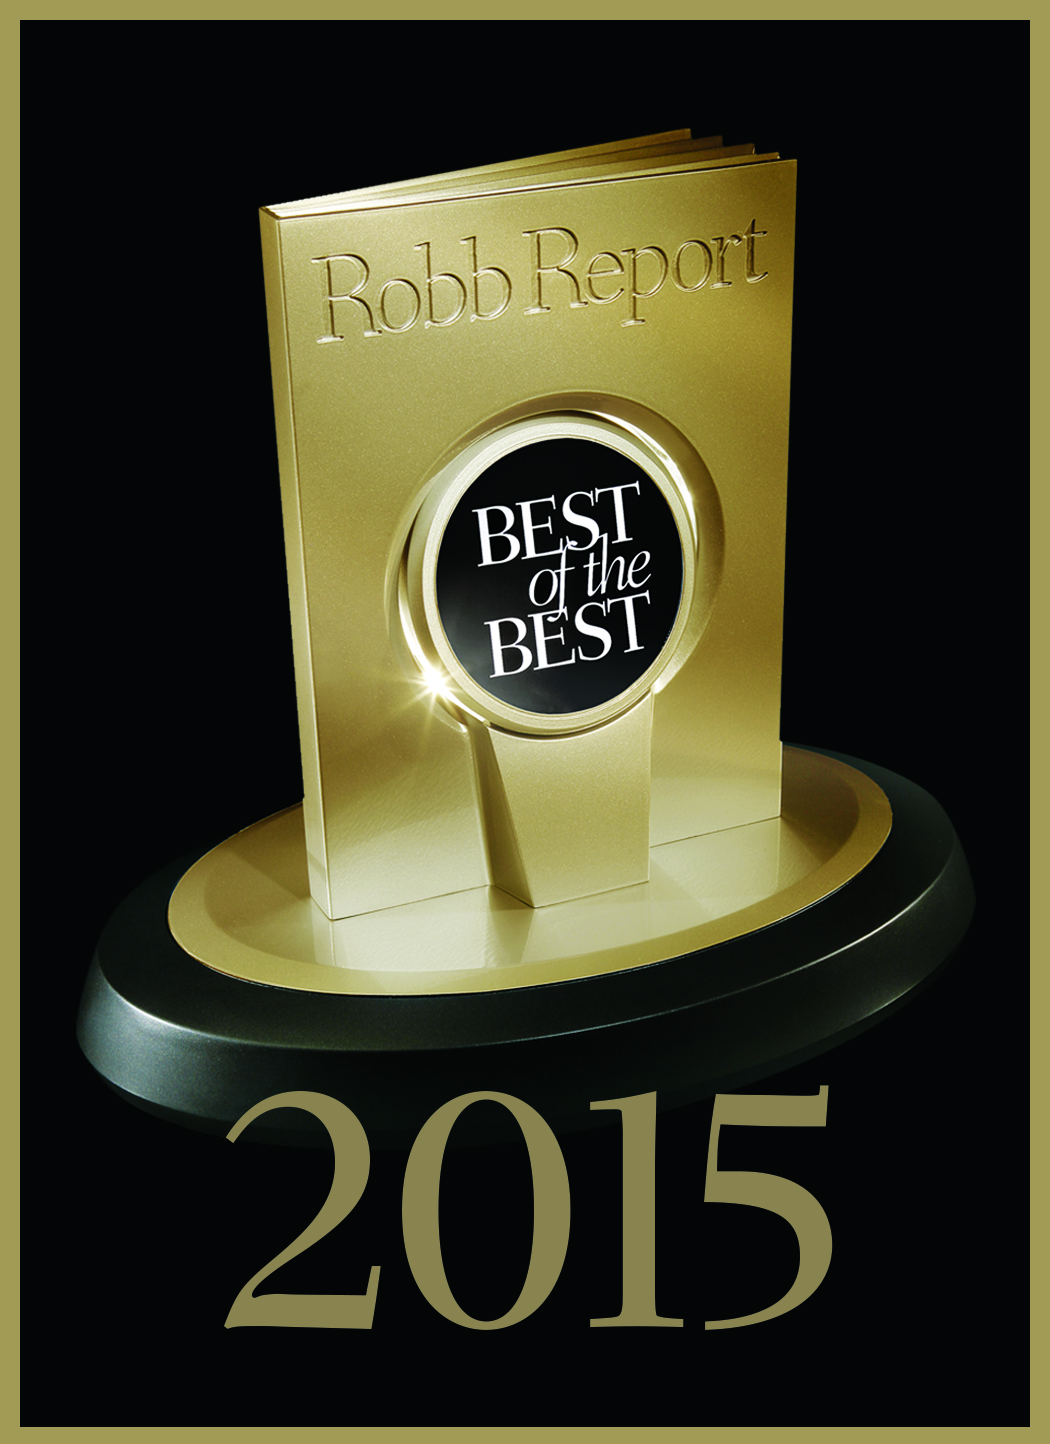 ROBB REPORT - 2015 Best of the Best Guide